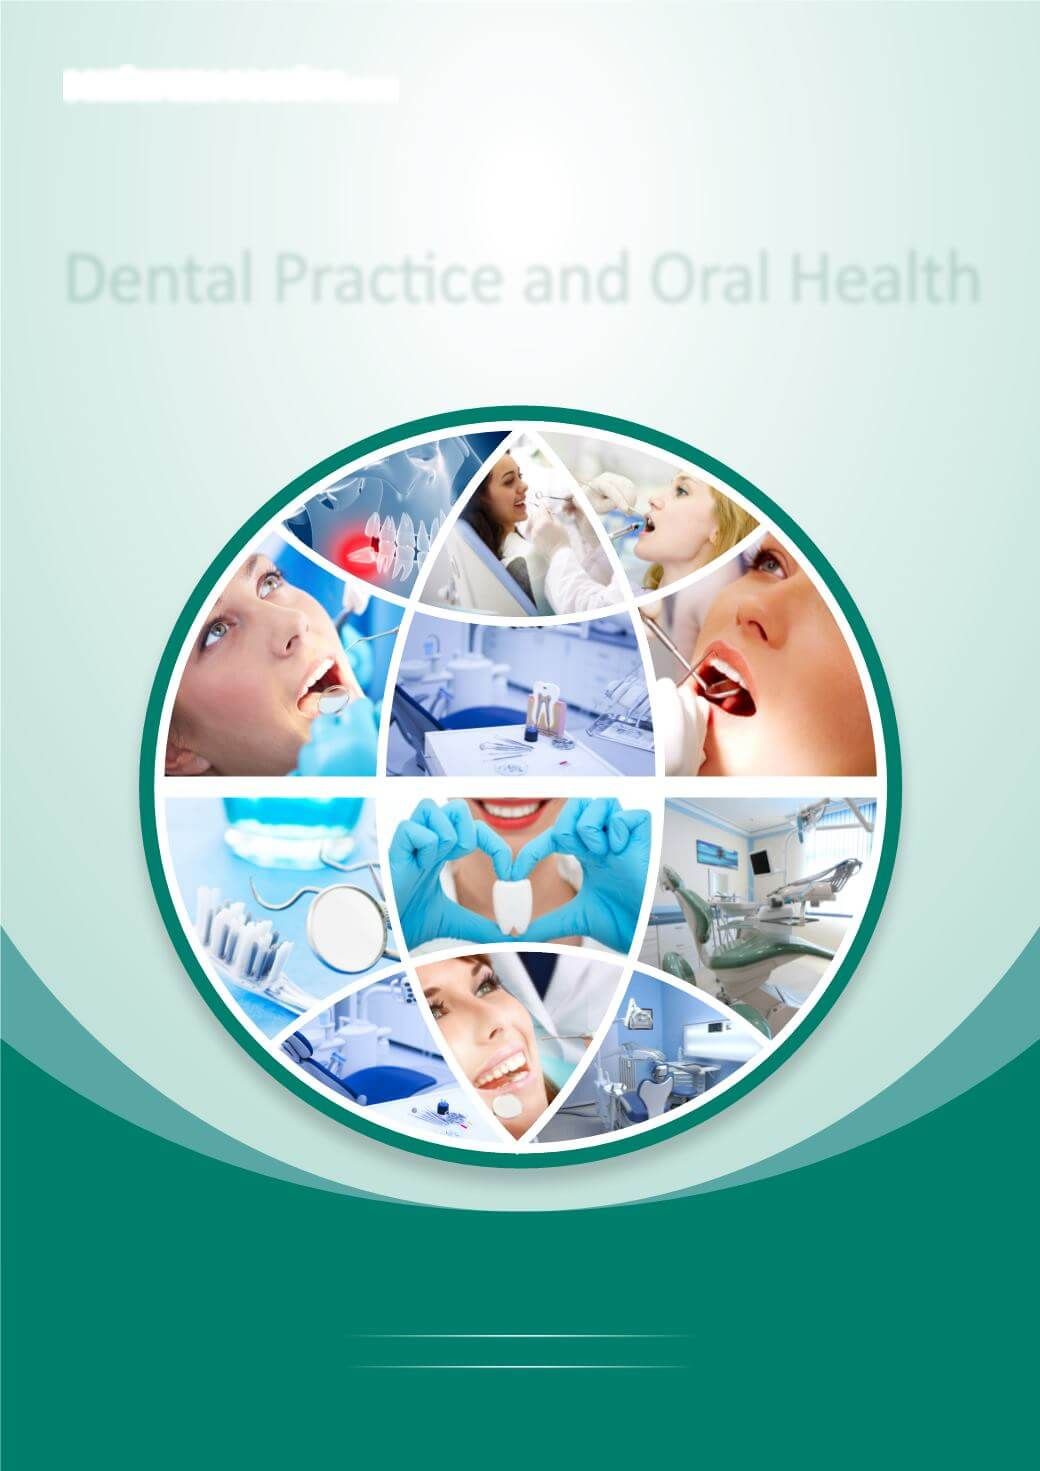 Proceedings for Dental Practice 2017